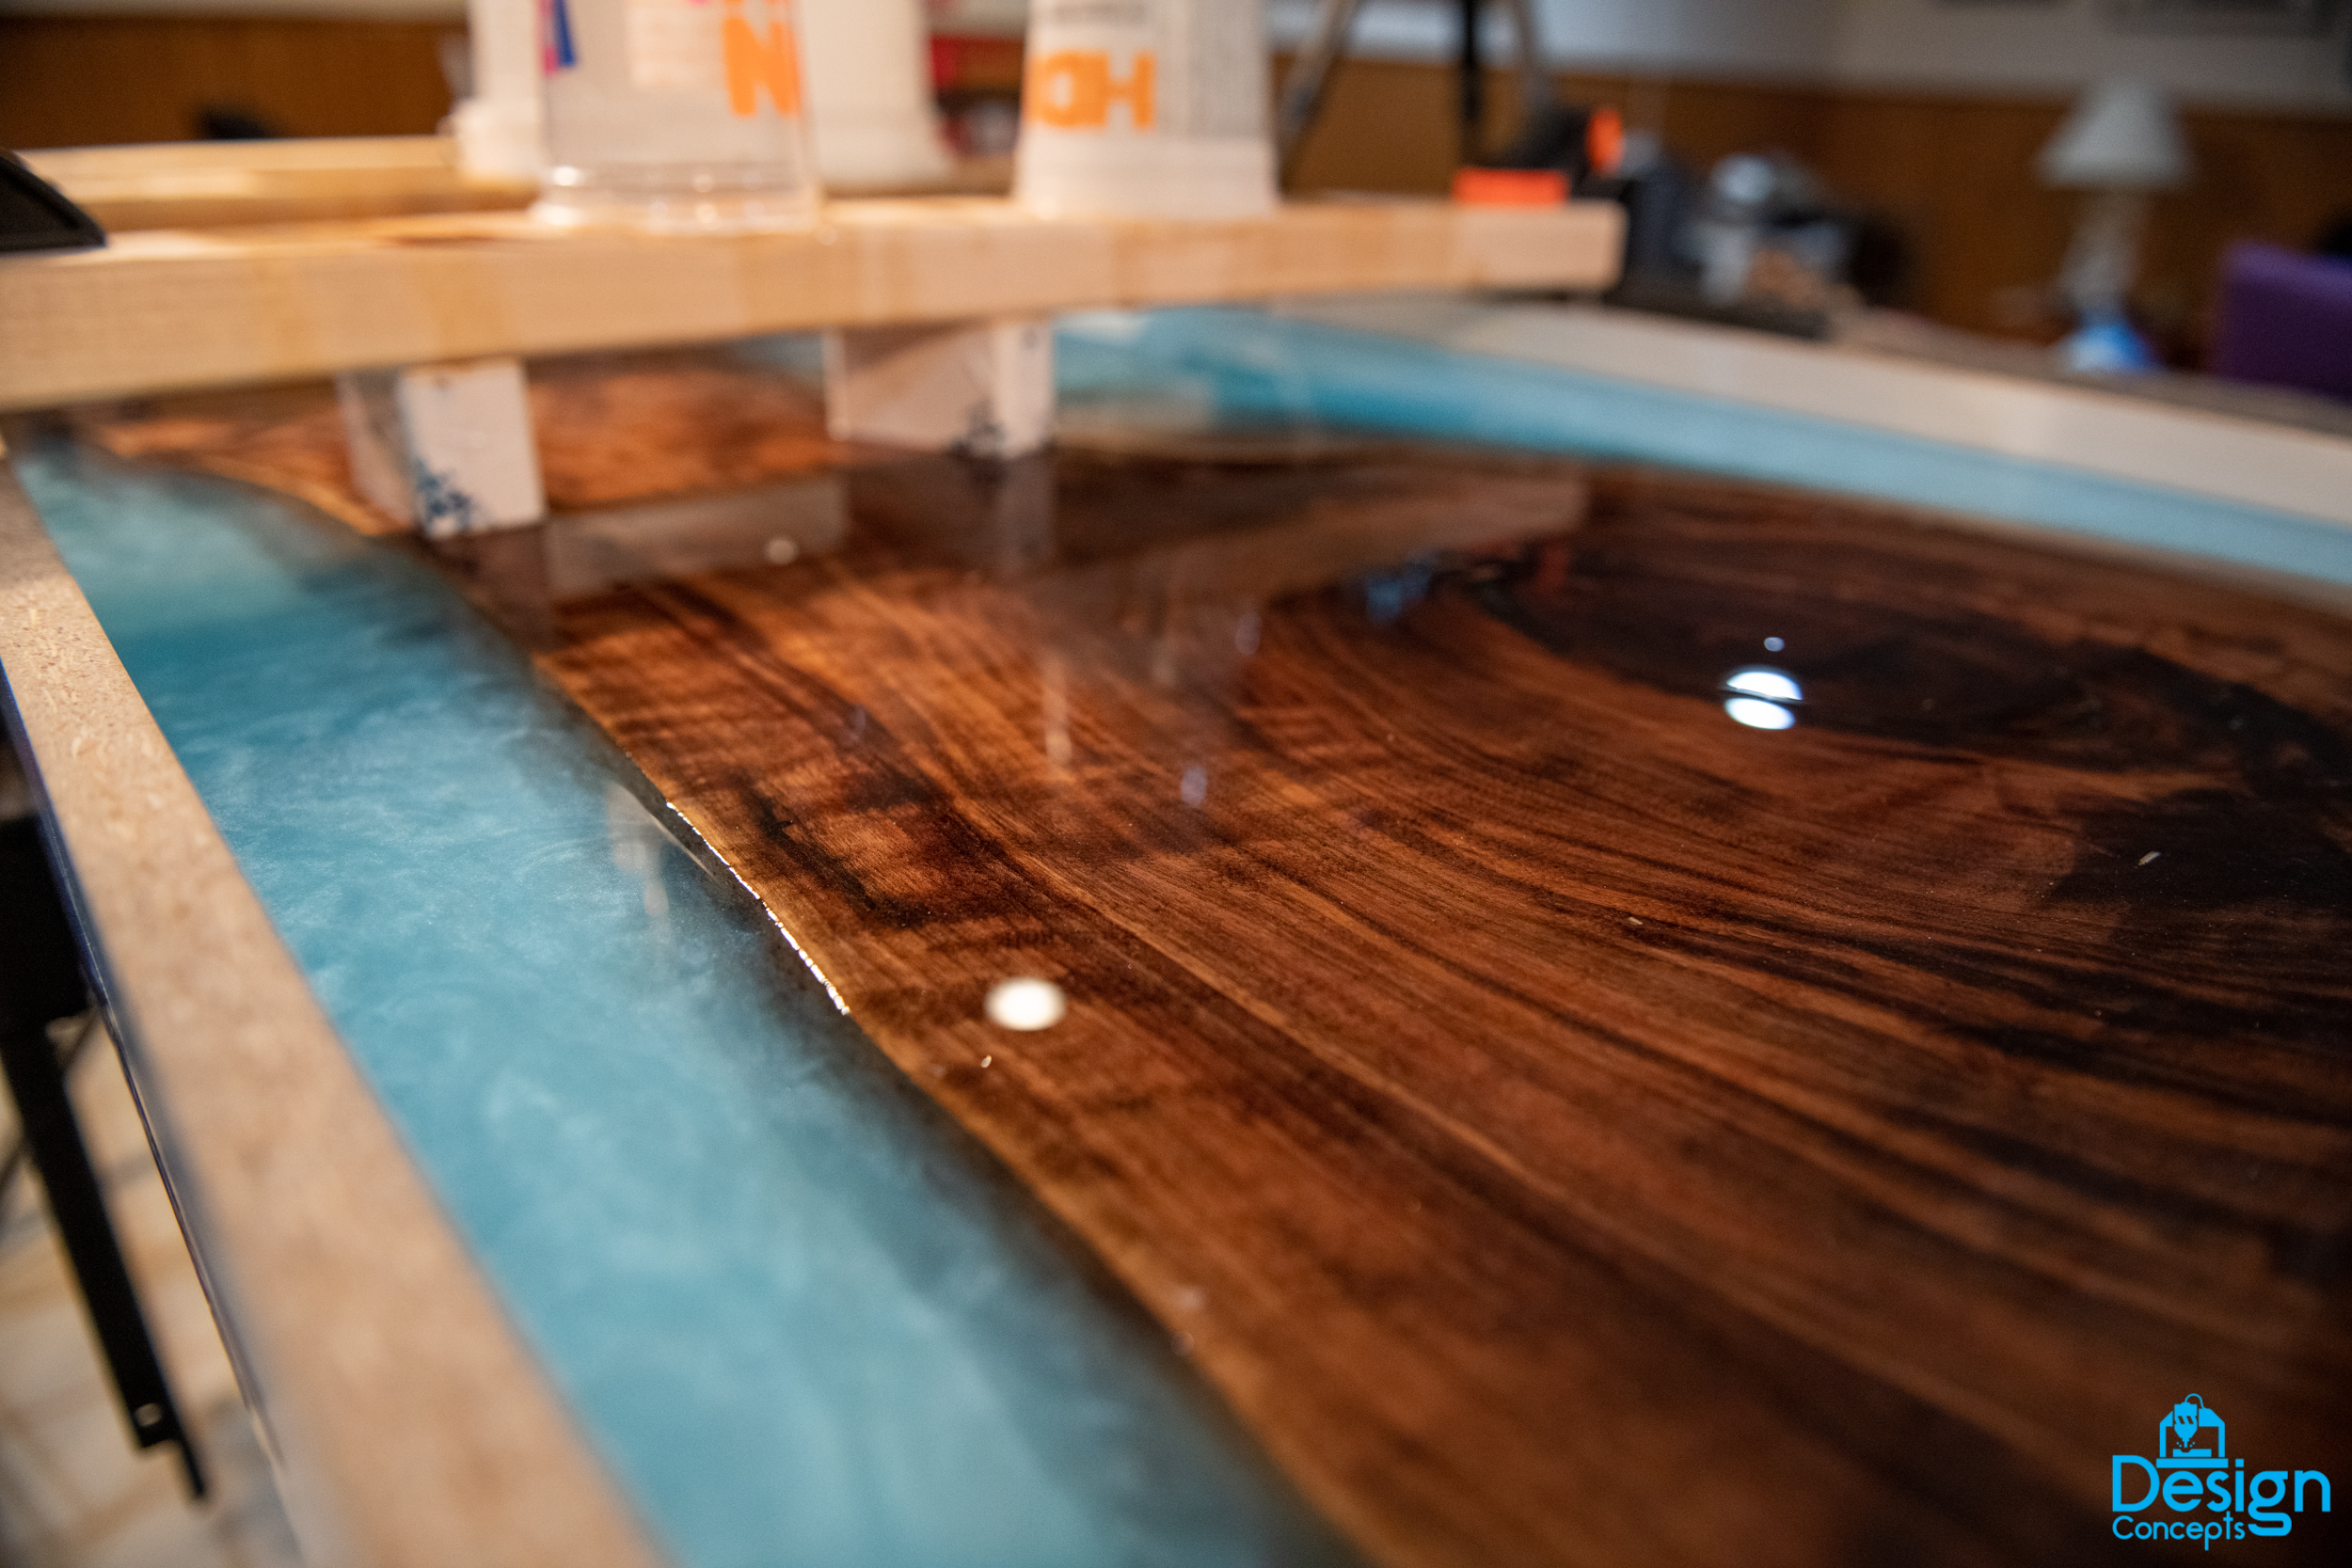 Epoxy Resin Table for Amy (8 of 10).jpg